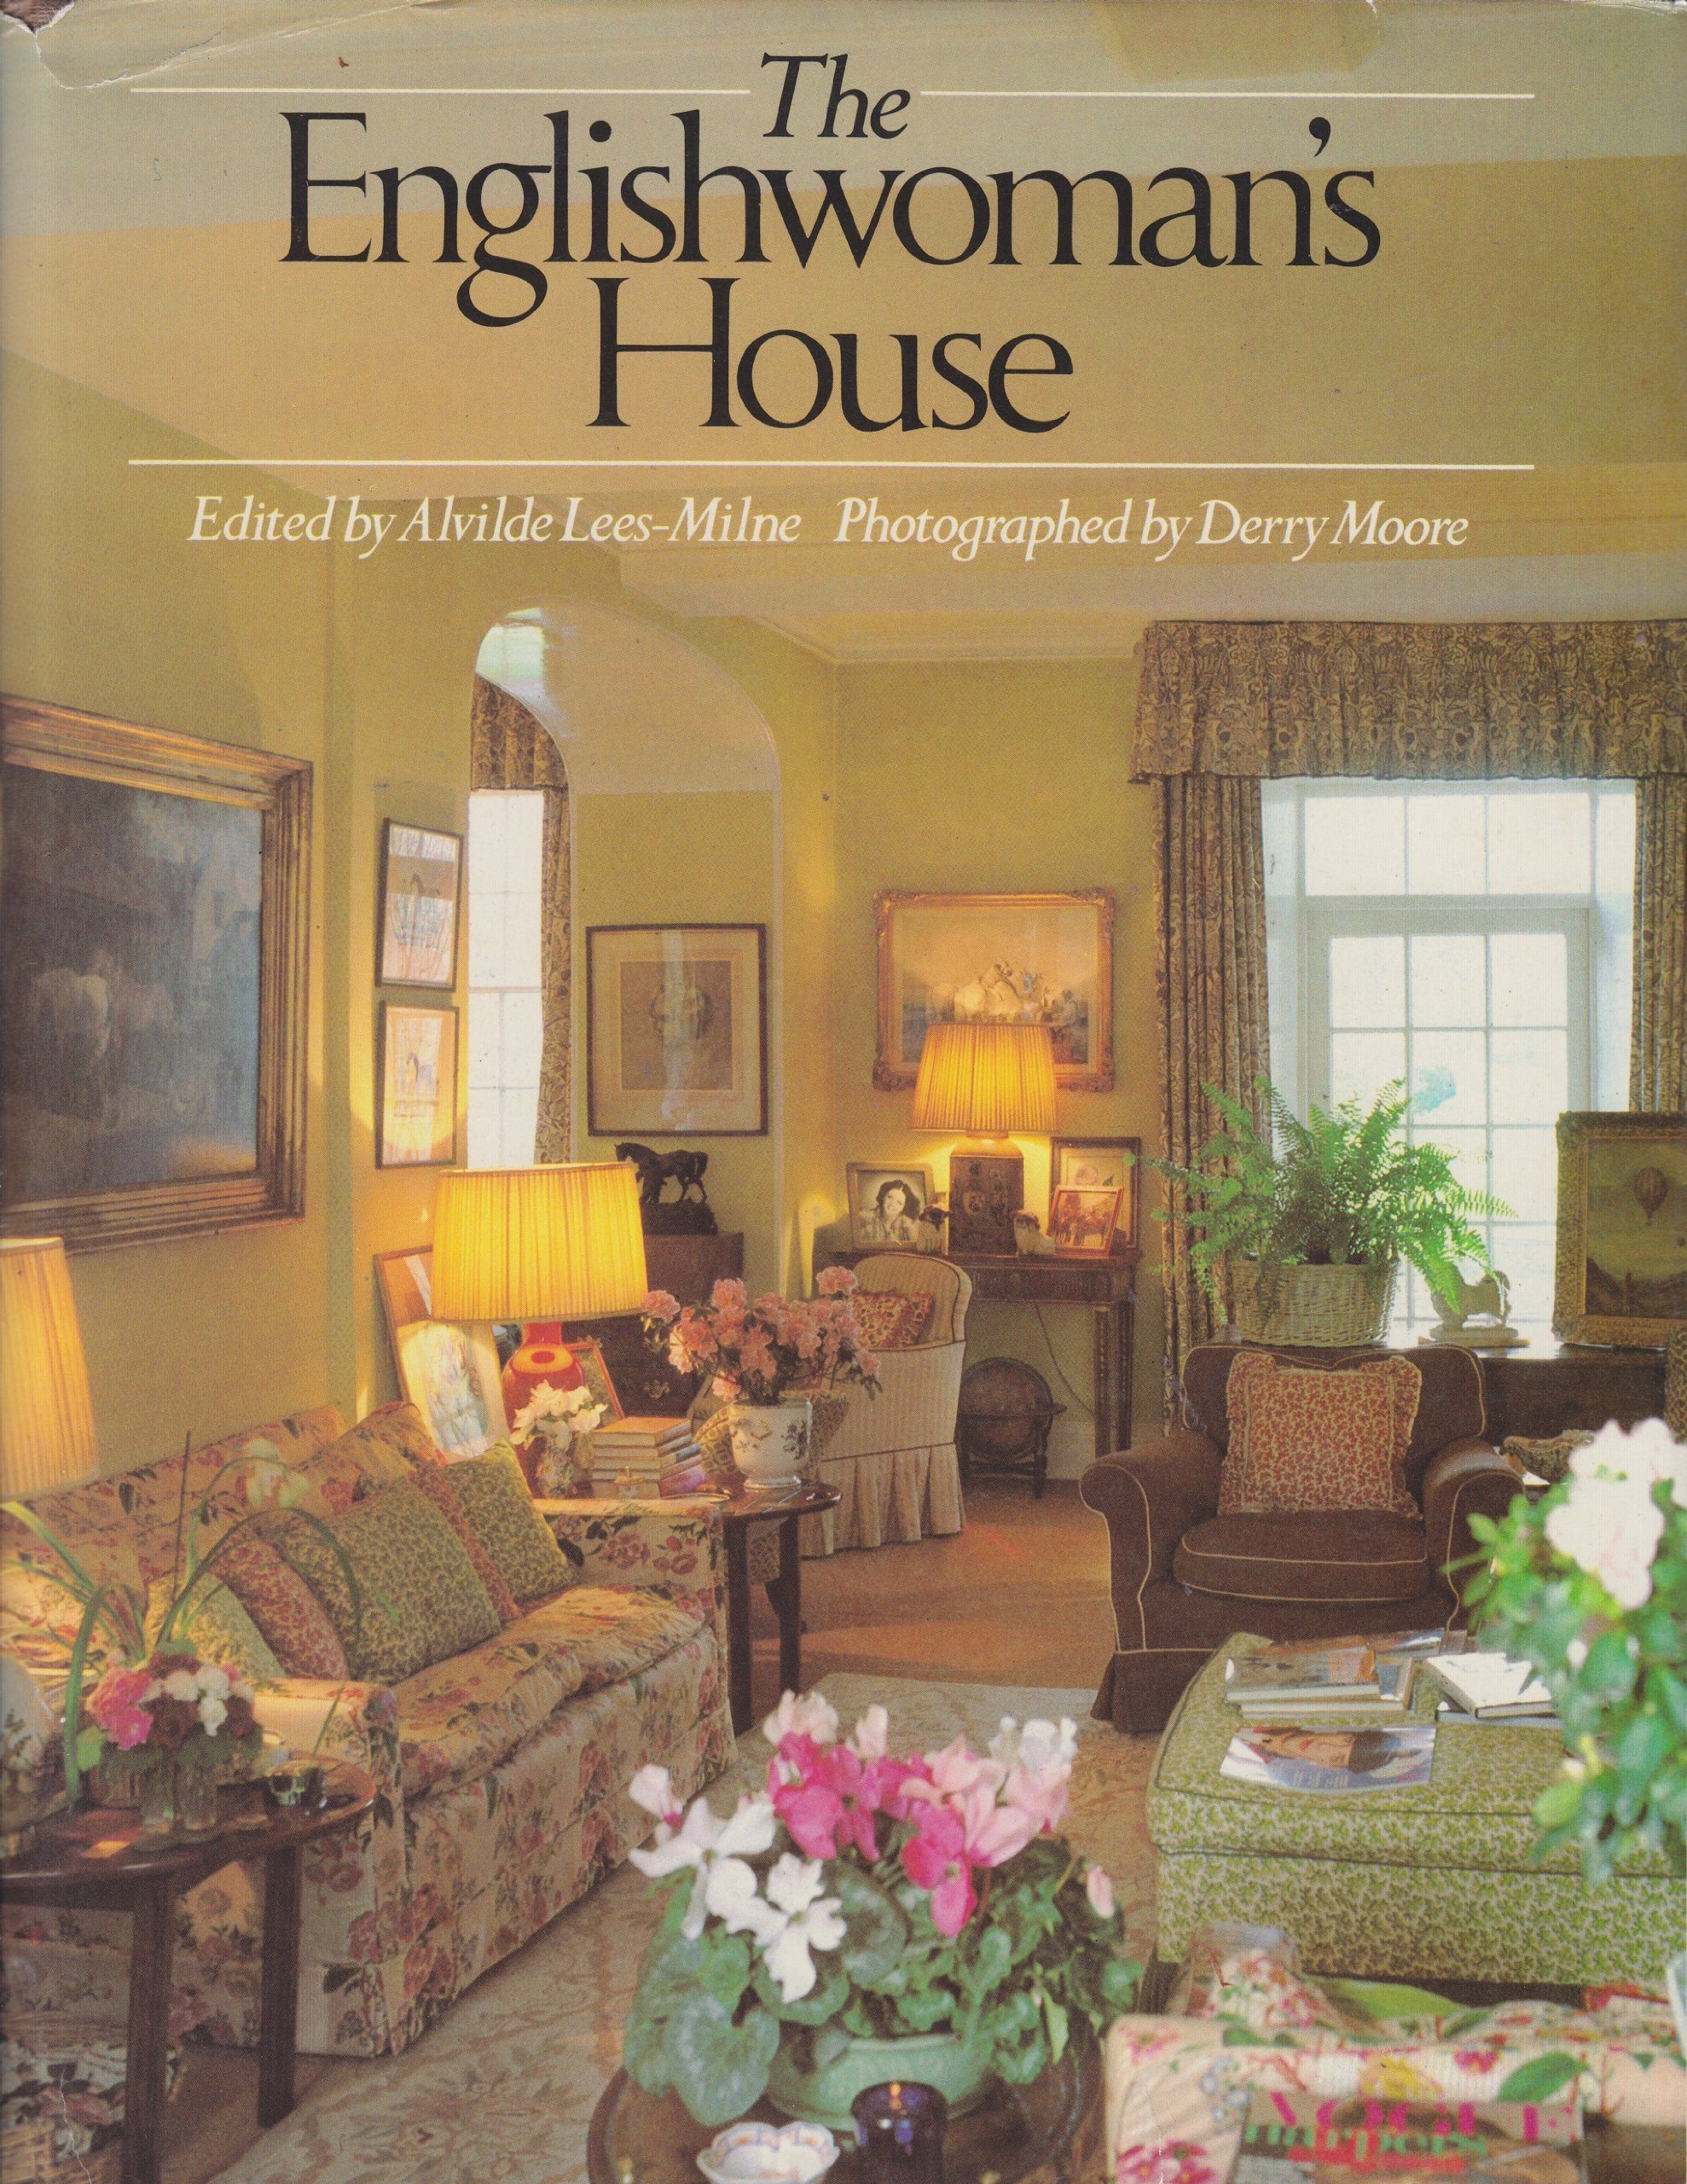 The Englishwoman's House